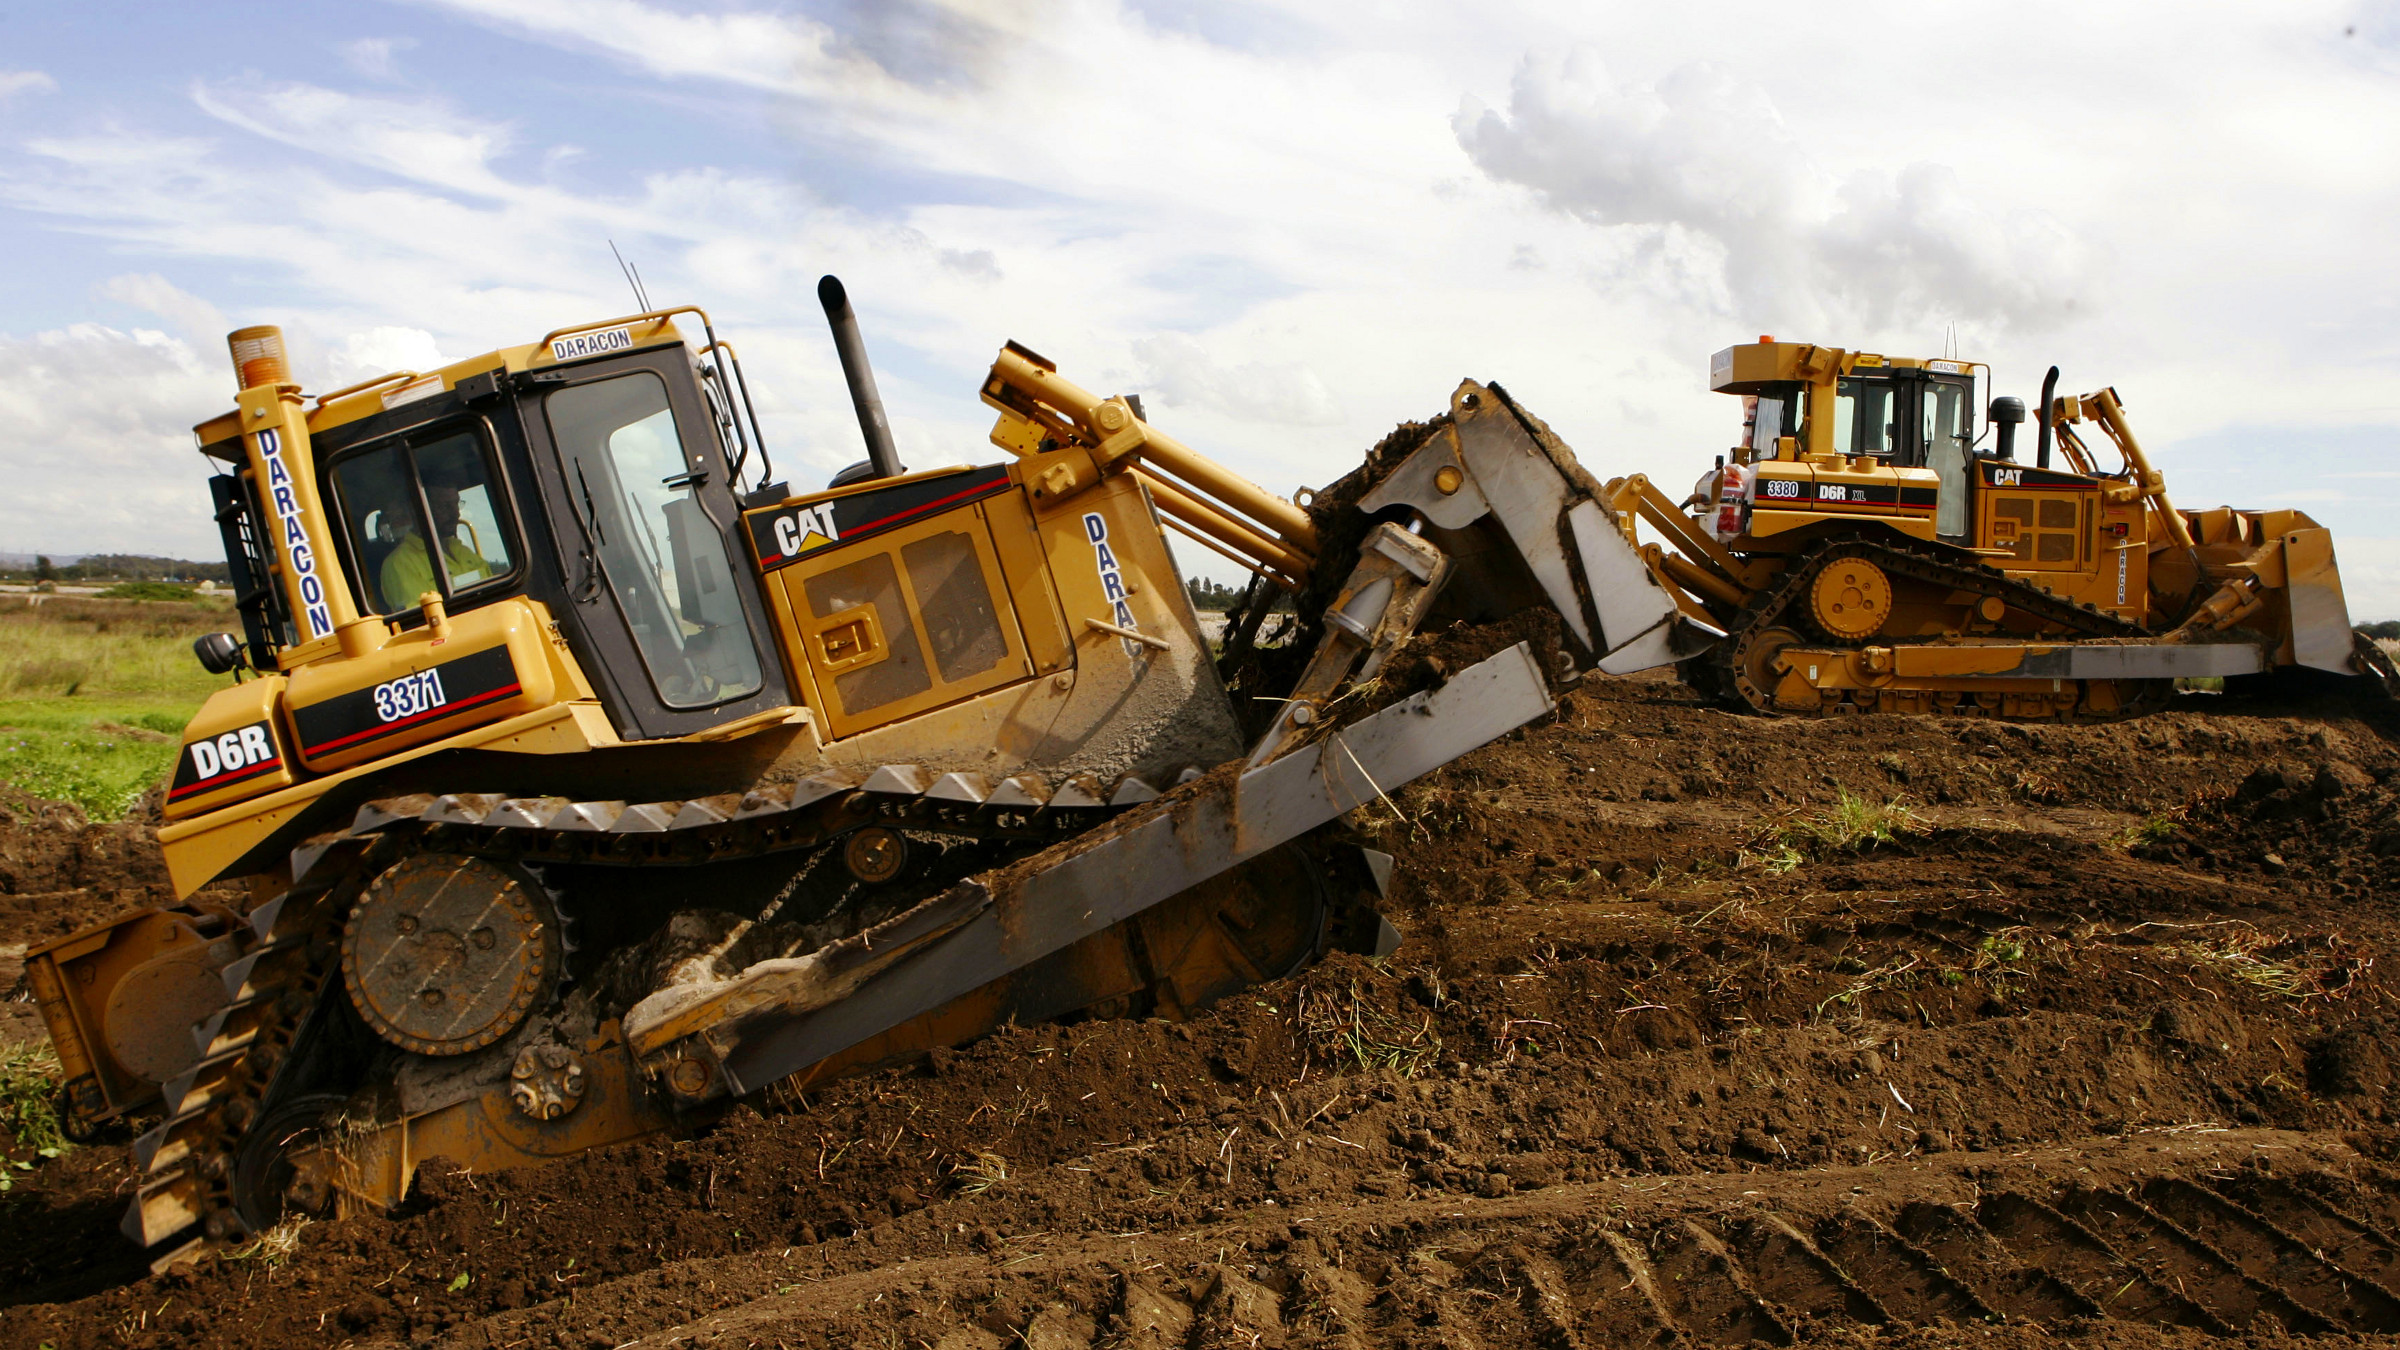 FILE - In this March 19, 2008 file photo, a pair of Caterpillar D6 bulldozers work on construction of a coal loading facility in Newcastle, Australia. Caterpillar Inc. said Tuesday, Oct. 20, 2009, its profit plunged in the latest quarter as construction companies bought fewer of its big yellow-and-black machines.